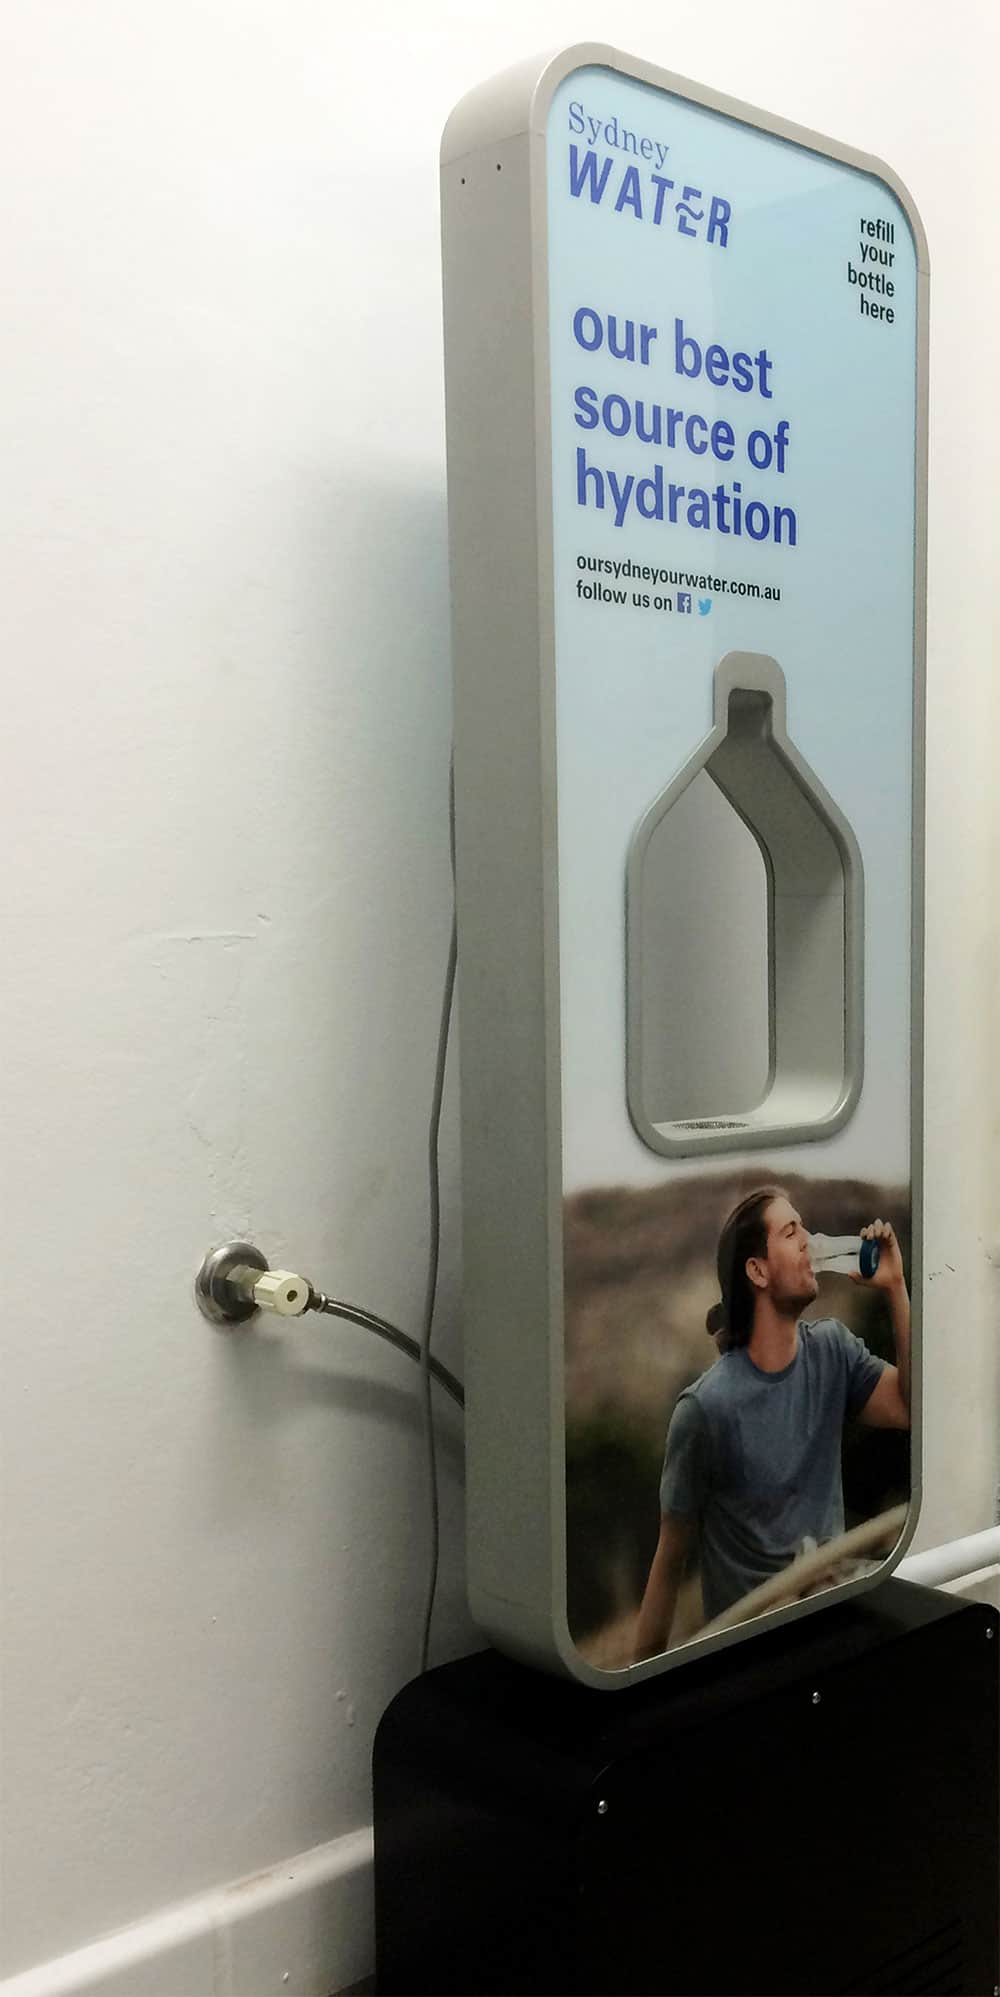 Meet_PAT_Chilled_Bottle_Refill_Station_Sydney_Water_WEB_03